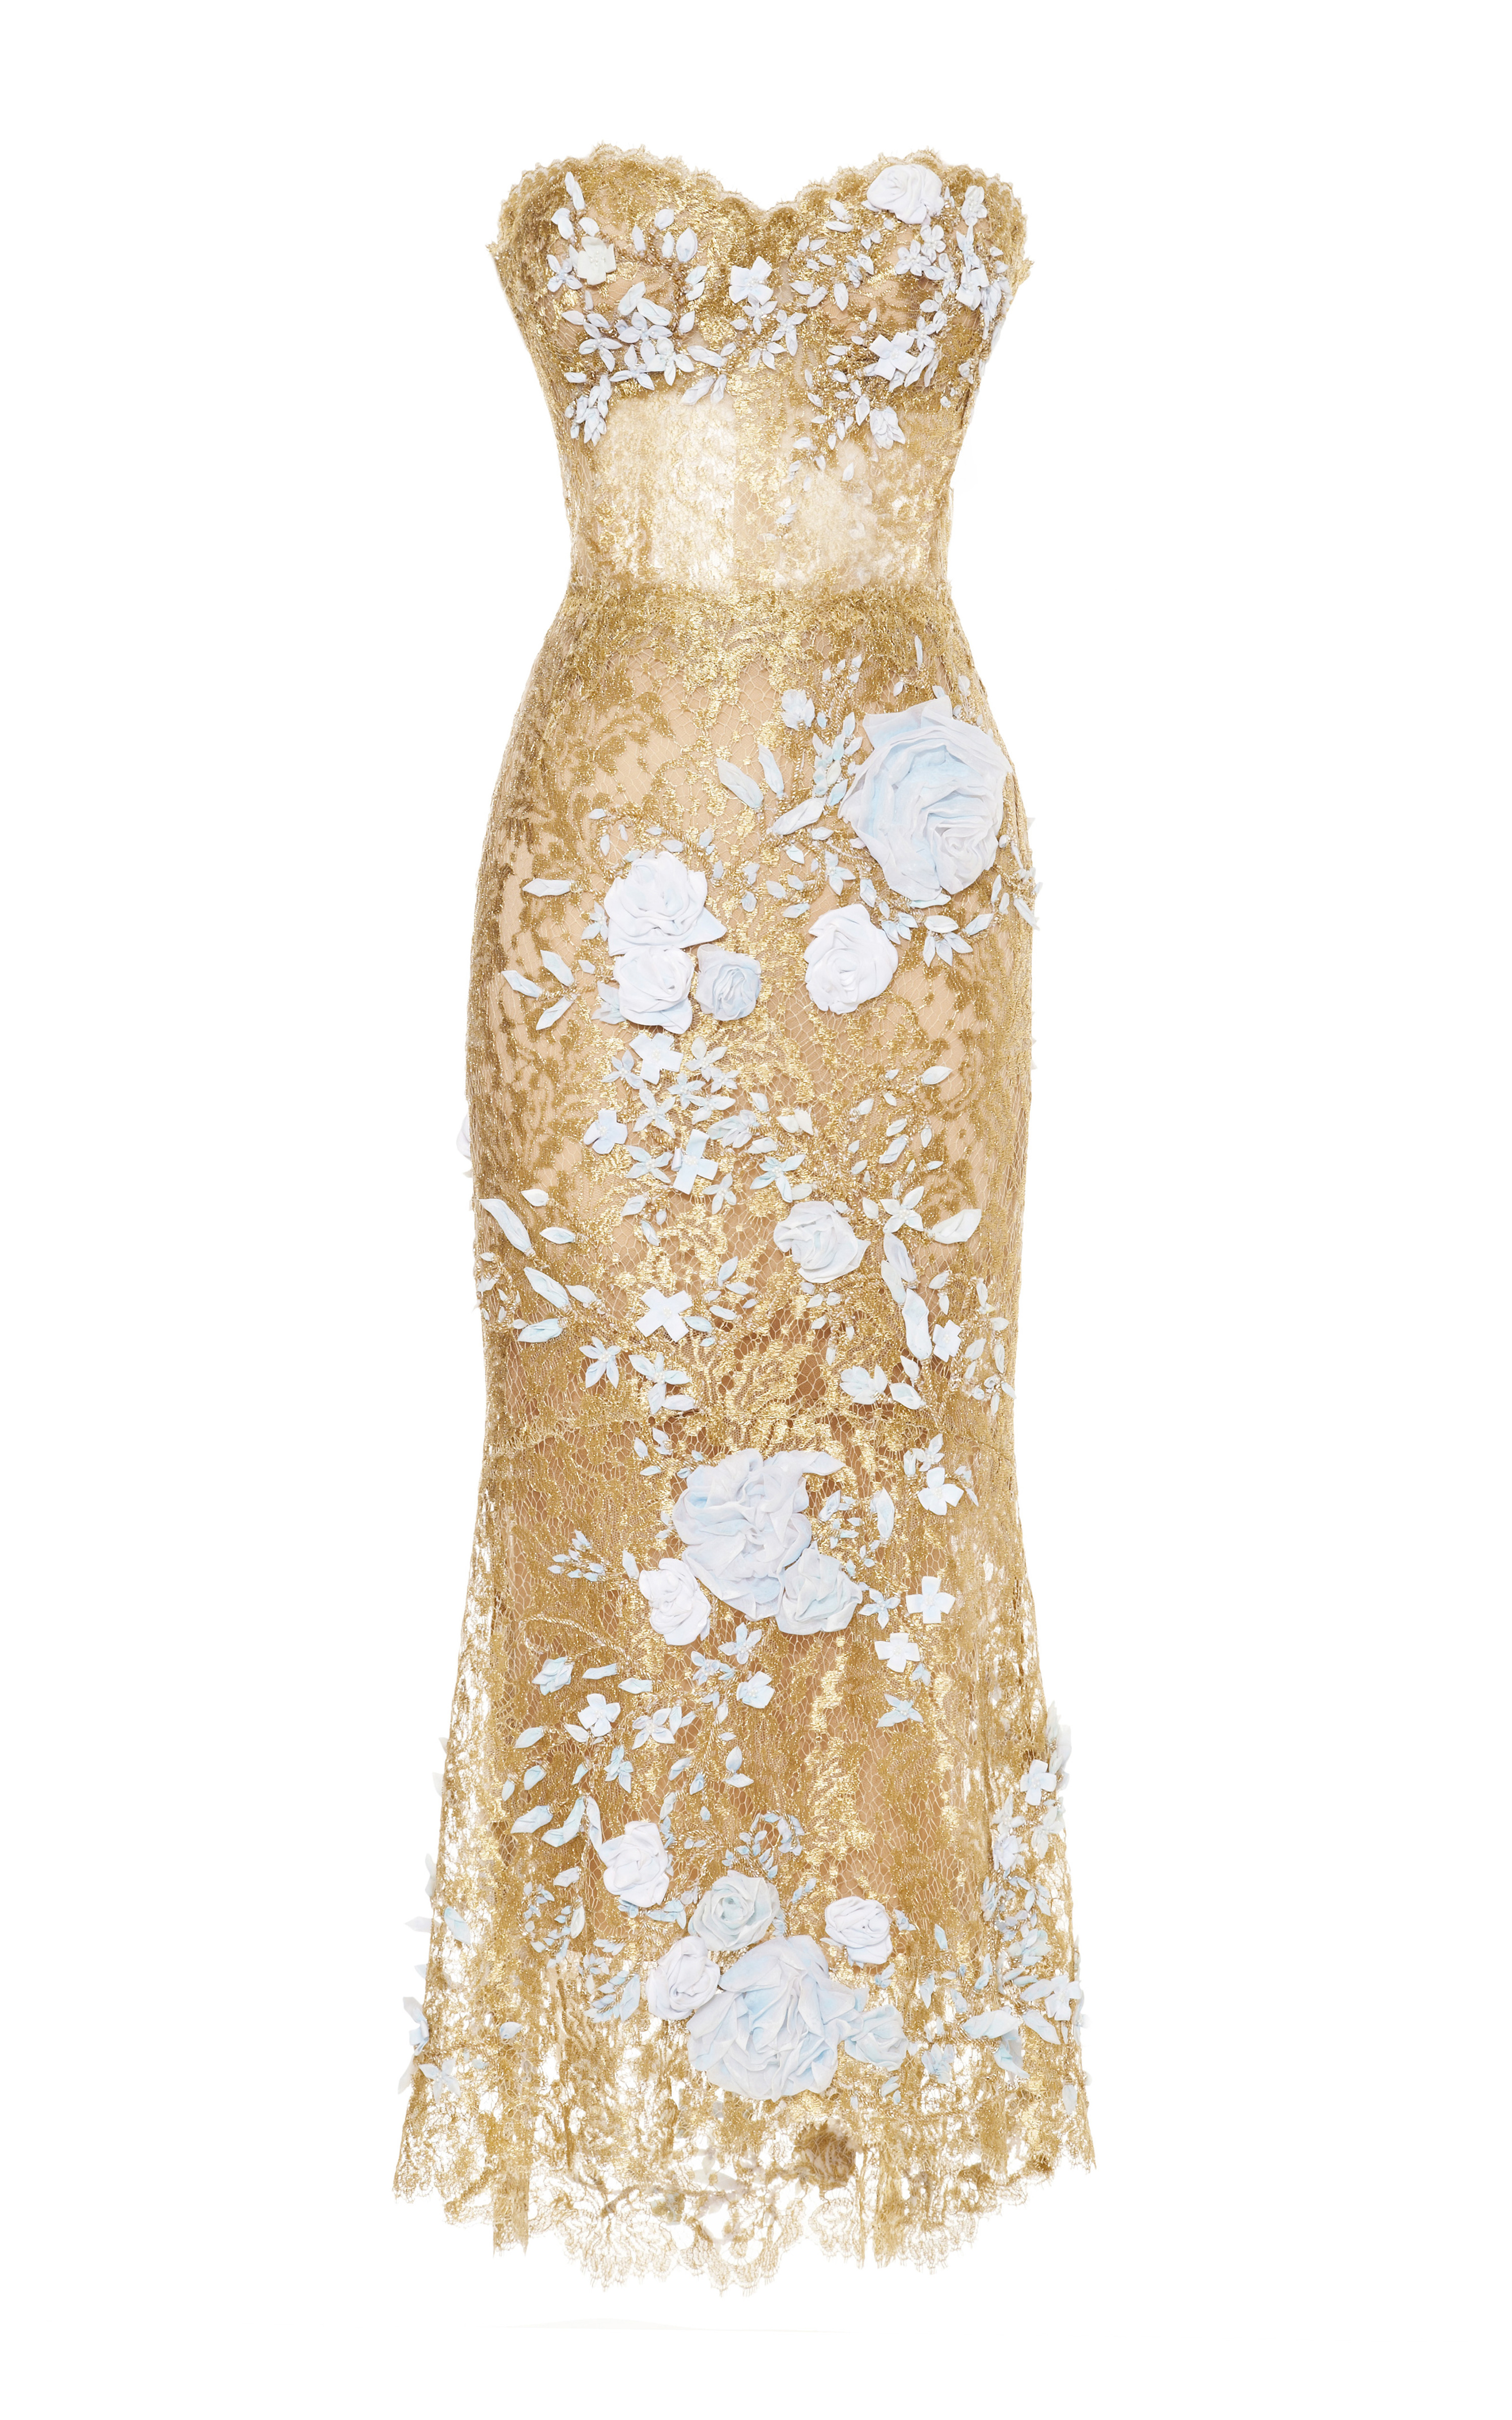 154f45965e Marchesa Strapless Metallic Lace Cocktail Dress in Natural - Lyst